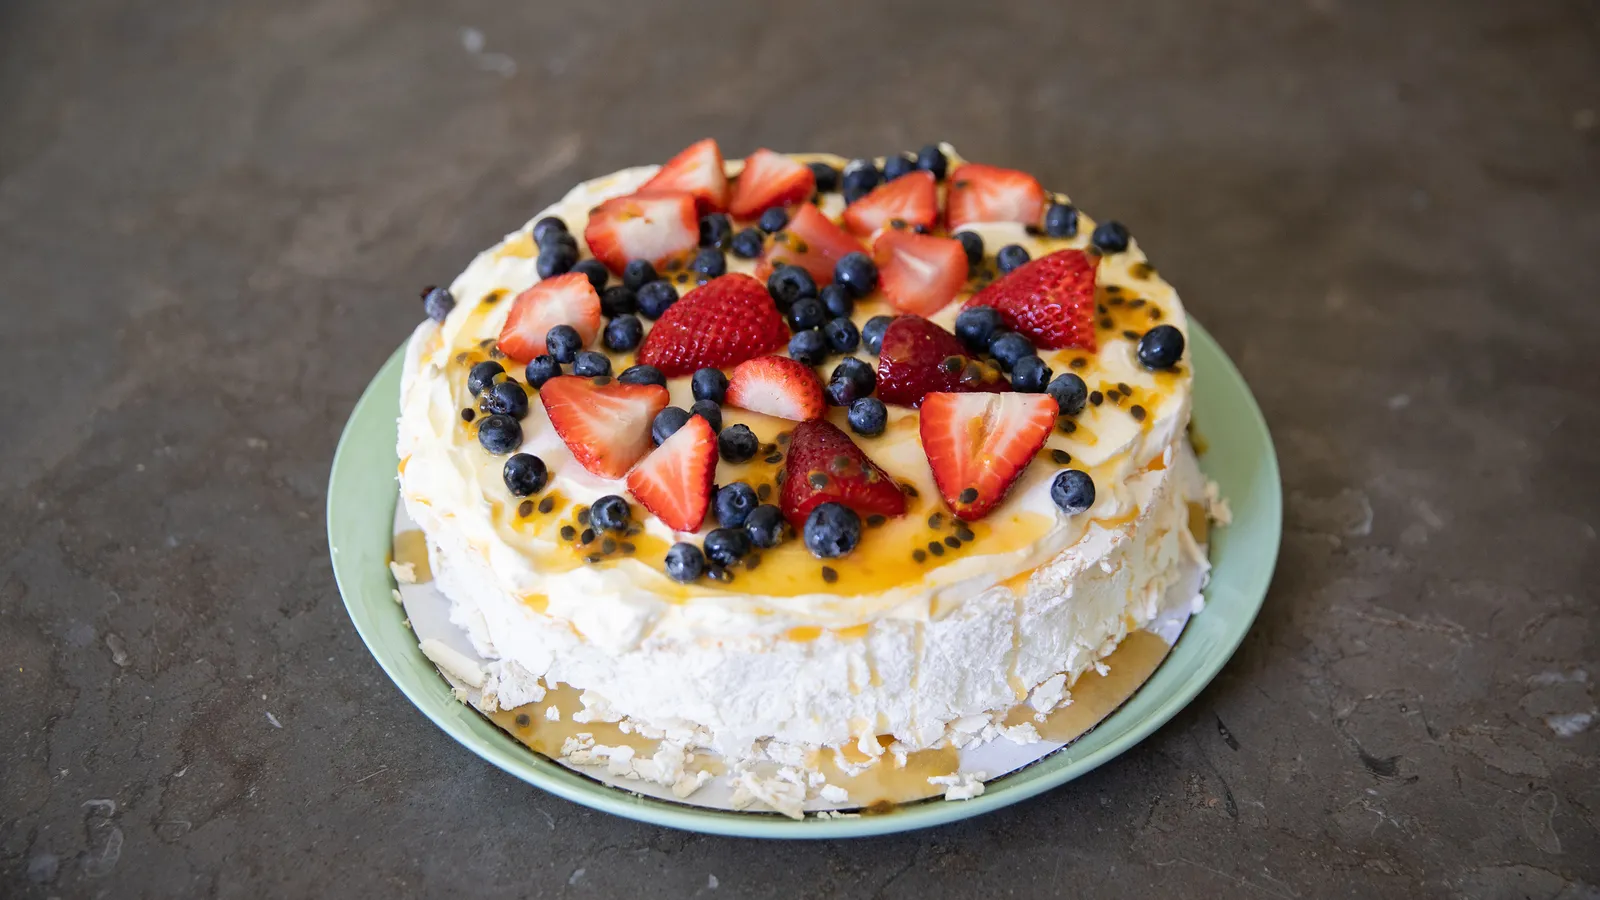 Discover The Most Famous and Delicious Cakes In The World - Tasteatlas